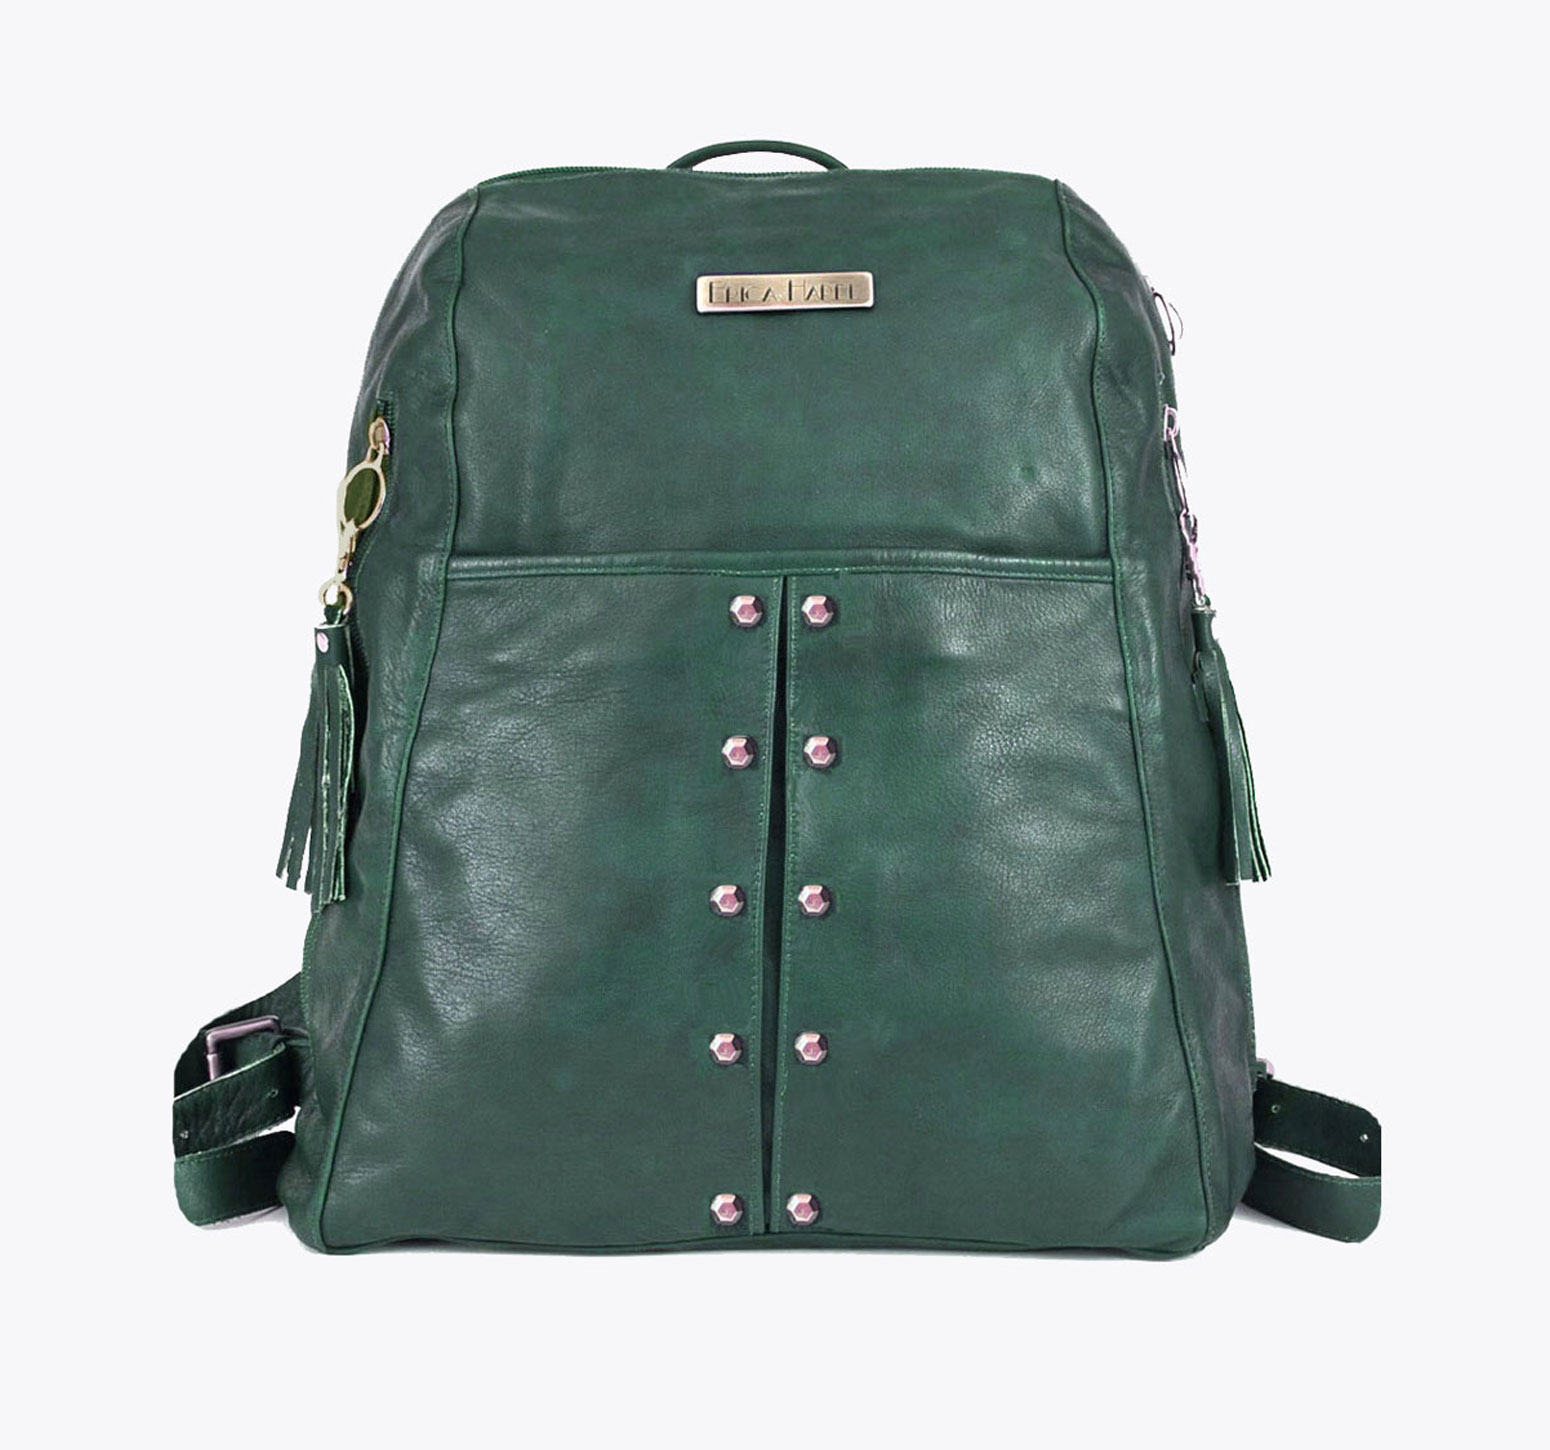 Green Leather Backpack LmfBb2wk